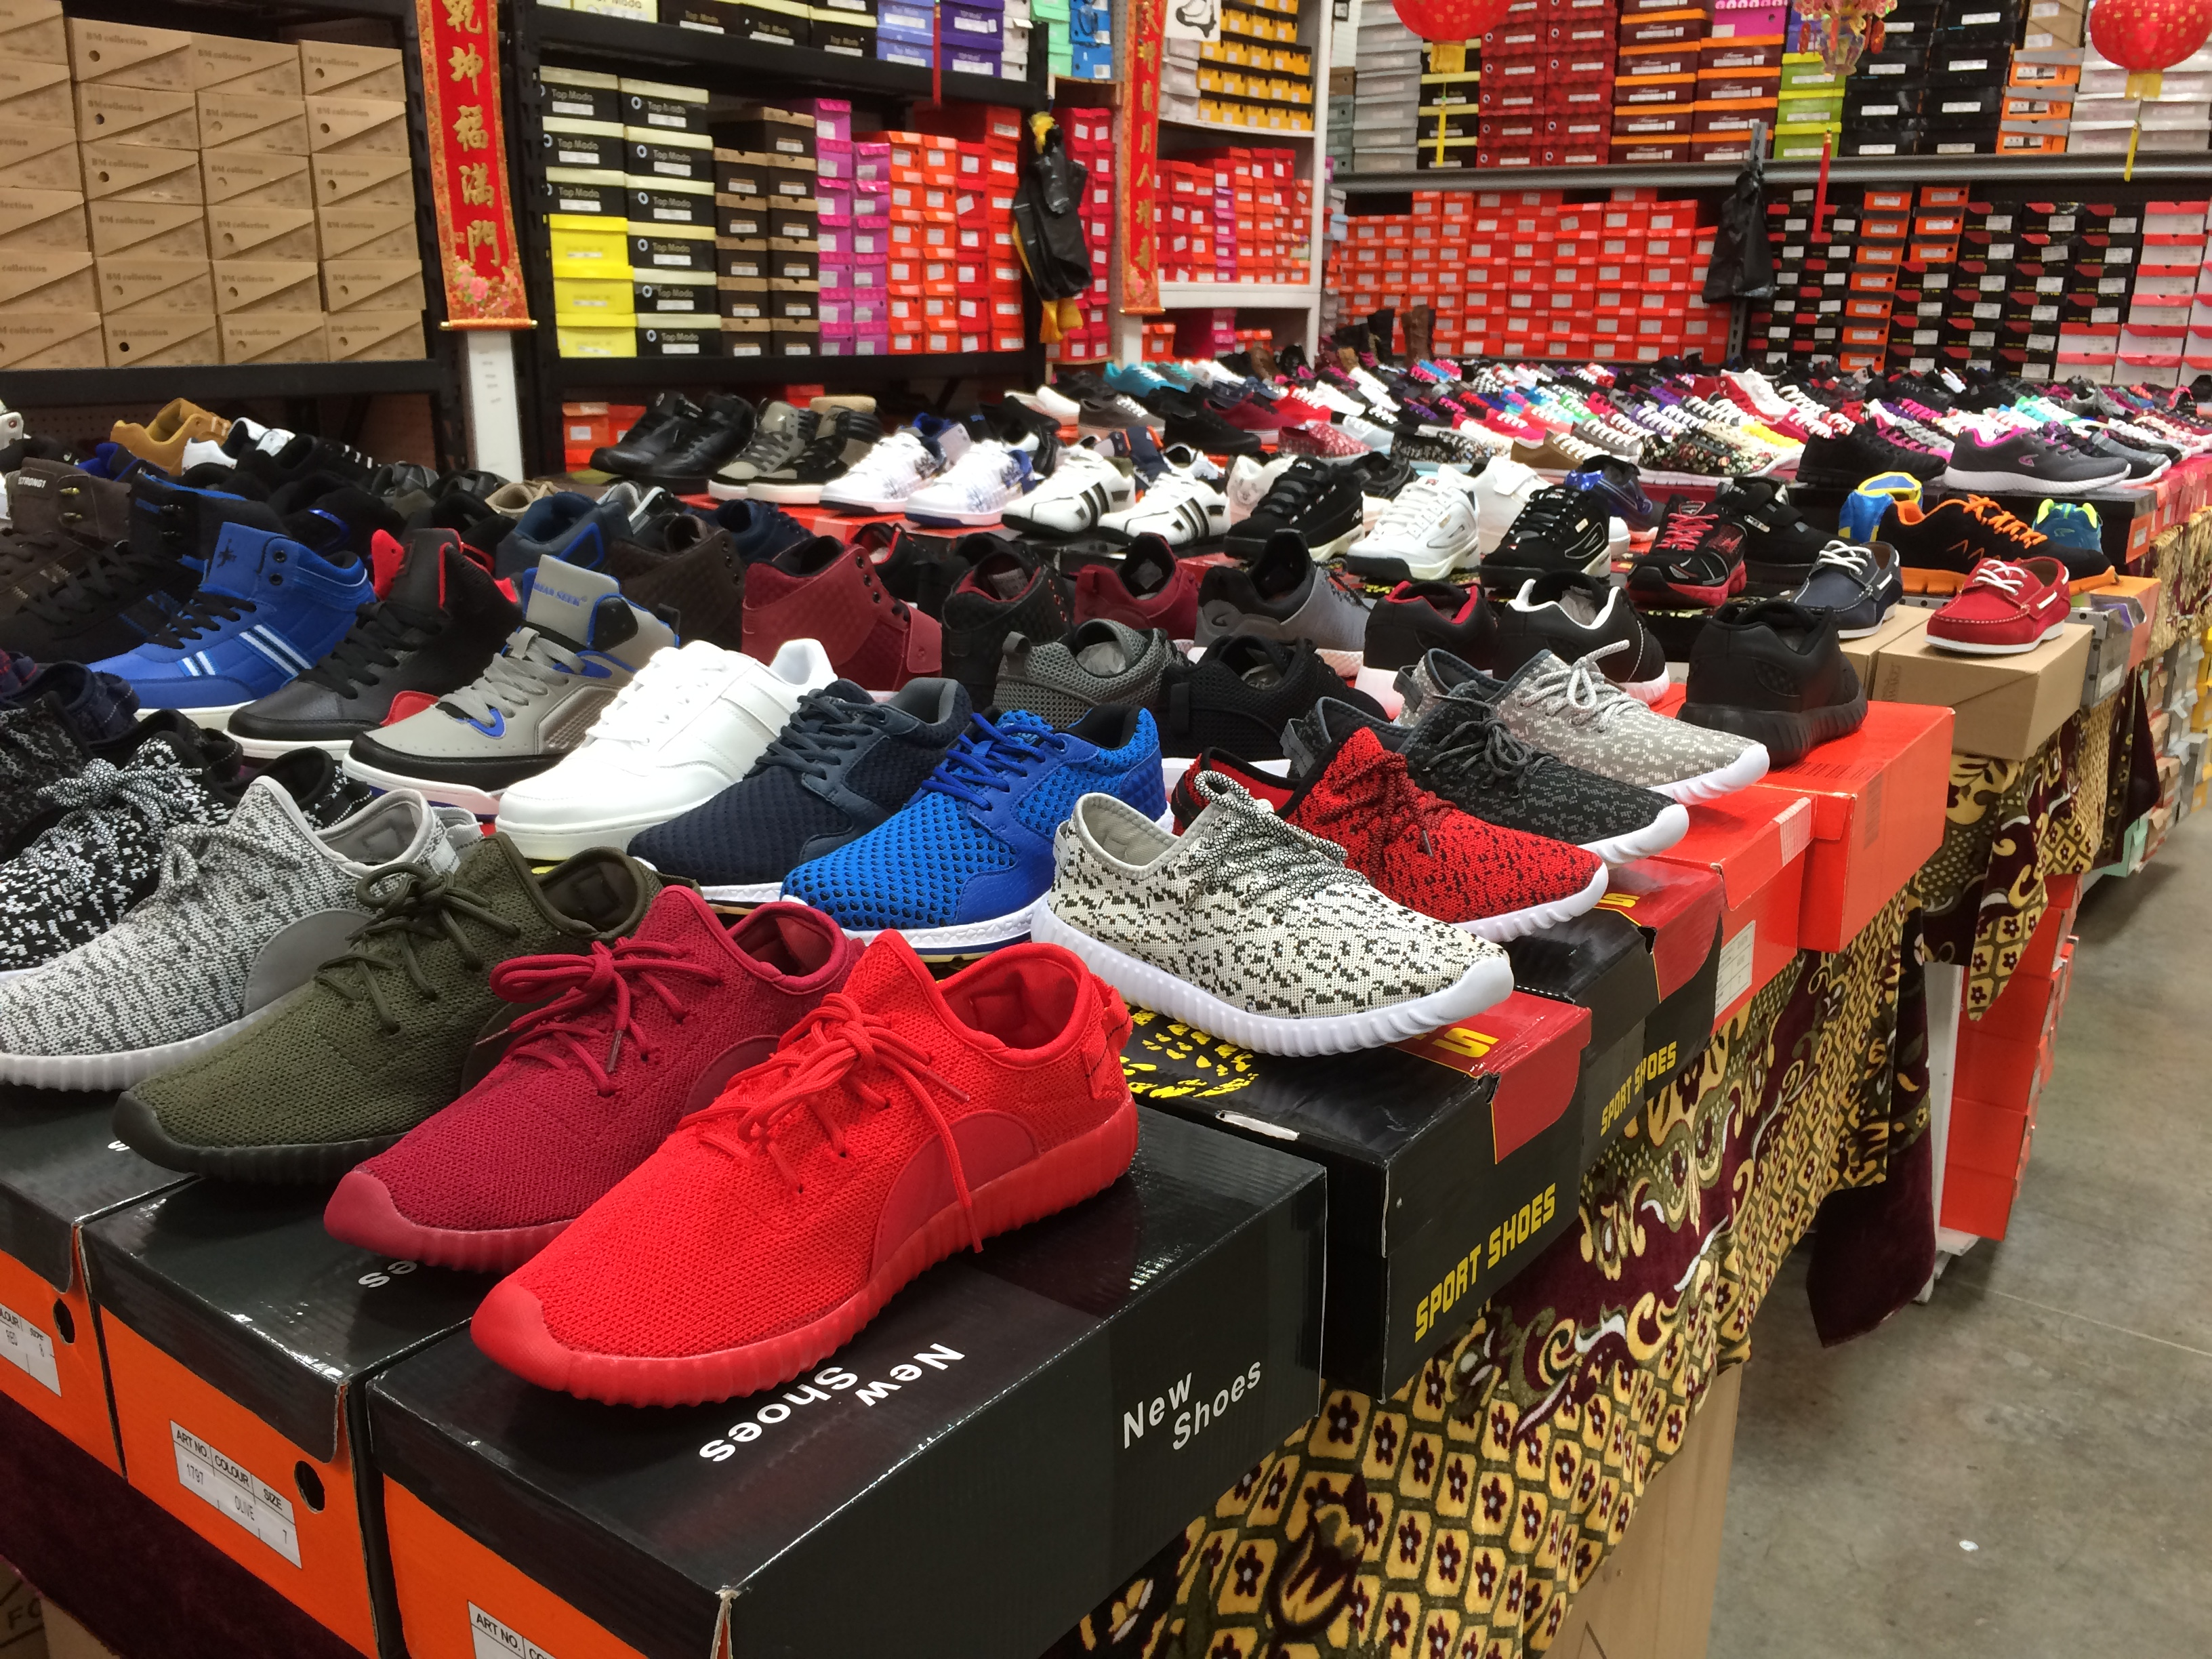 f87f3c5e3549 shoe-queen-shopsmart-sacramento-all-the-latest-sneakers-and-dress-shoes -for-men-women-and-children16